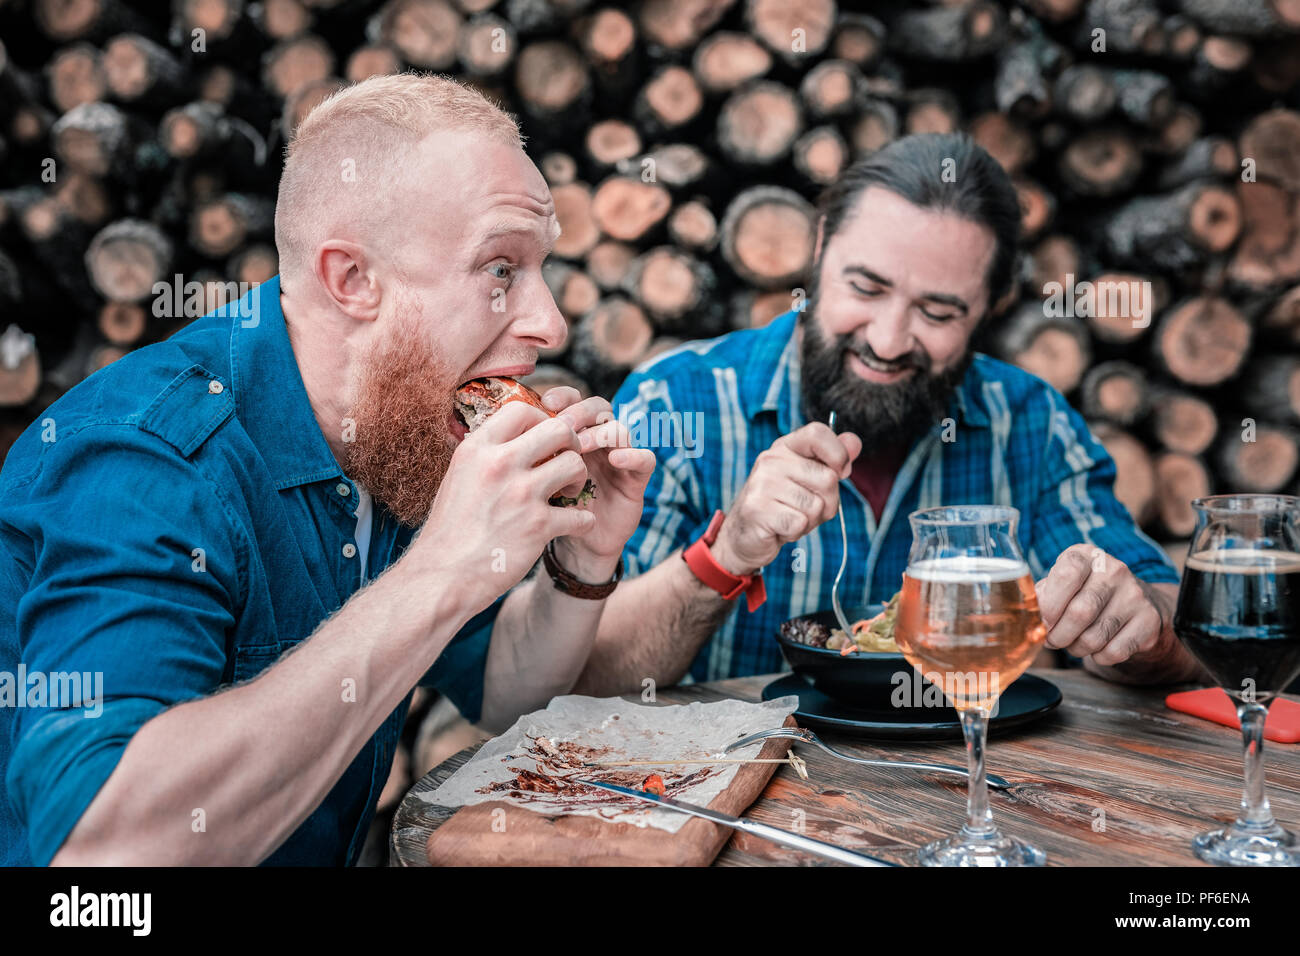 Red-haired man eating junk food sitting hear his friend with salad - Stock Image